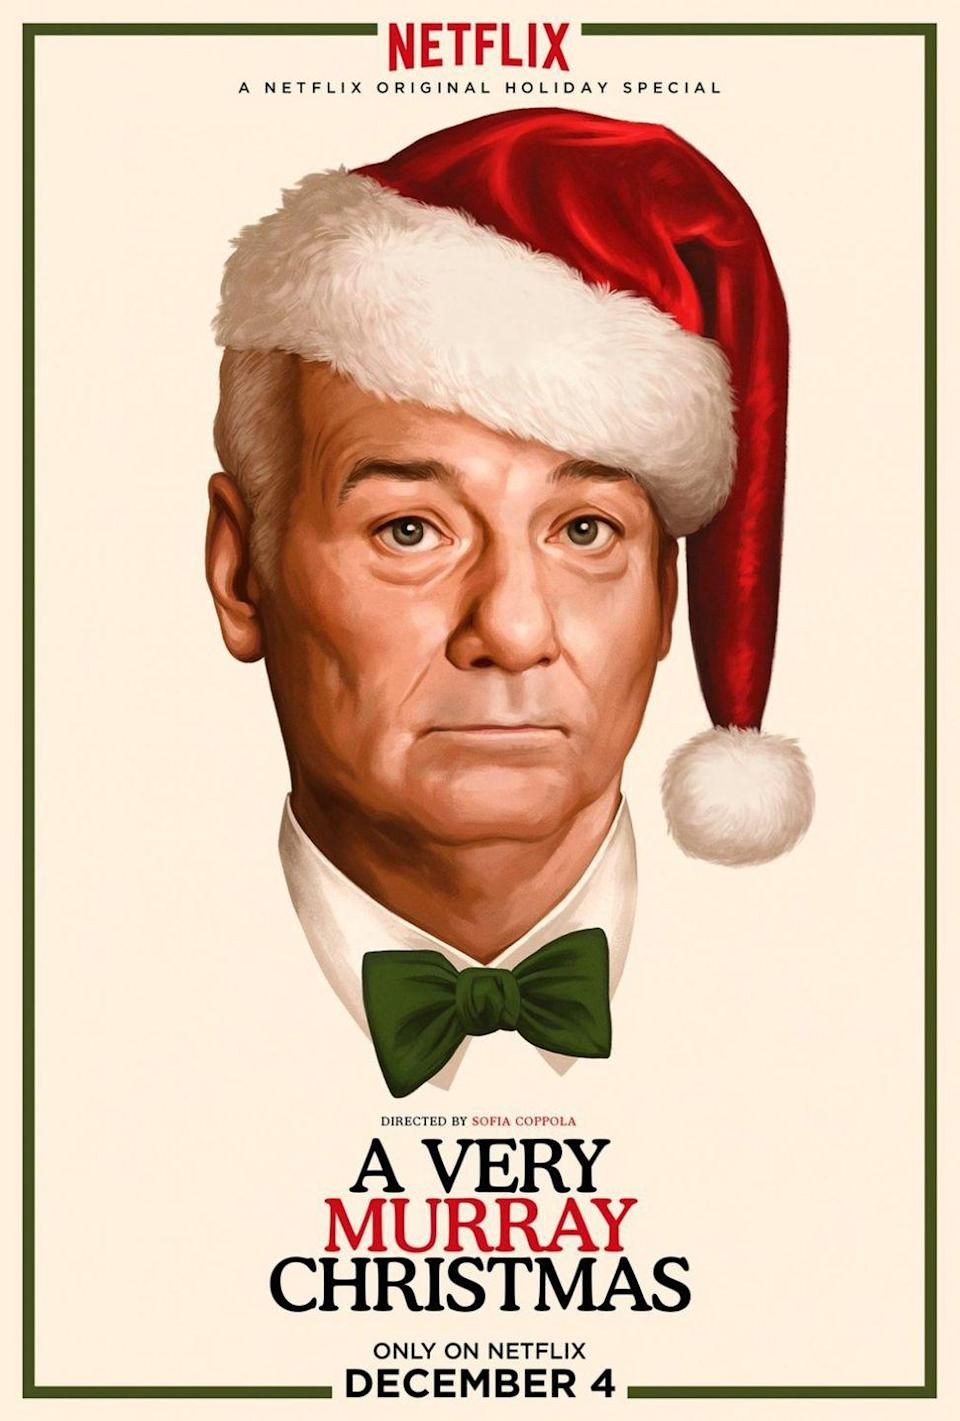 """<p>Every holiday could always use some more Bill Murray. With special guests <a href=""""https://www.womenshealthmag.com/food/a33915879/miley-cyrus-quit-vegan-diet/"""" rel=""""nofollow noopener"""" target=""""_blank"""" data-ylk=""""slk:Miley Cyrus"""" class=""""link rapid-noclick-resp"""">Miley Cyrus</a>, Phoenix, <a href=""""https://www.womenshealthmag.com/relationships/a34520810/amal-george-clooney-zodiac-sign-astrology-compatibility/"""" rel=""""nofollow noopener"""" target=""""_blank"""" data-ylk=""""slk:George Clooney"""" class=""""link rapid-noclick-resp"""">George Clooney</a>, and Chris Rock—just to name a few—<em>A Very Murray Christmas</em> is Murray at his best. His dancing-and-singing-and-drinking-until-he-passes-out-on-Christmas-Eve best.</p><p><a class=""""link rapid-noclick-resp"""" href=""""https://www.netflix.com/title/80042368"""" rel=""""nofollow noopener"""" target=""""_blank"""" data-ylk=""""slk:Watch Now"""">Watch Now</a></p>"""